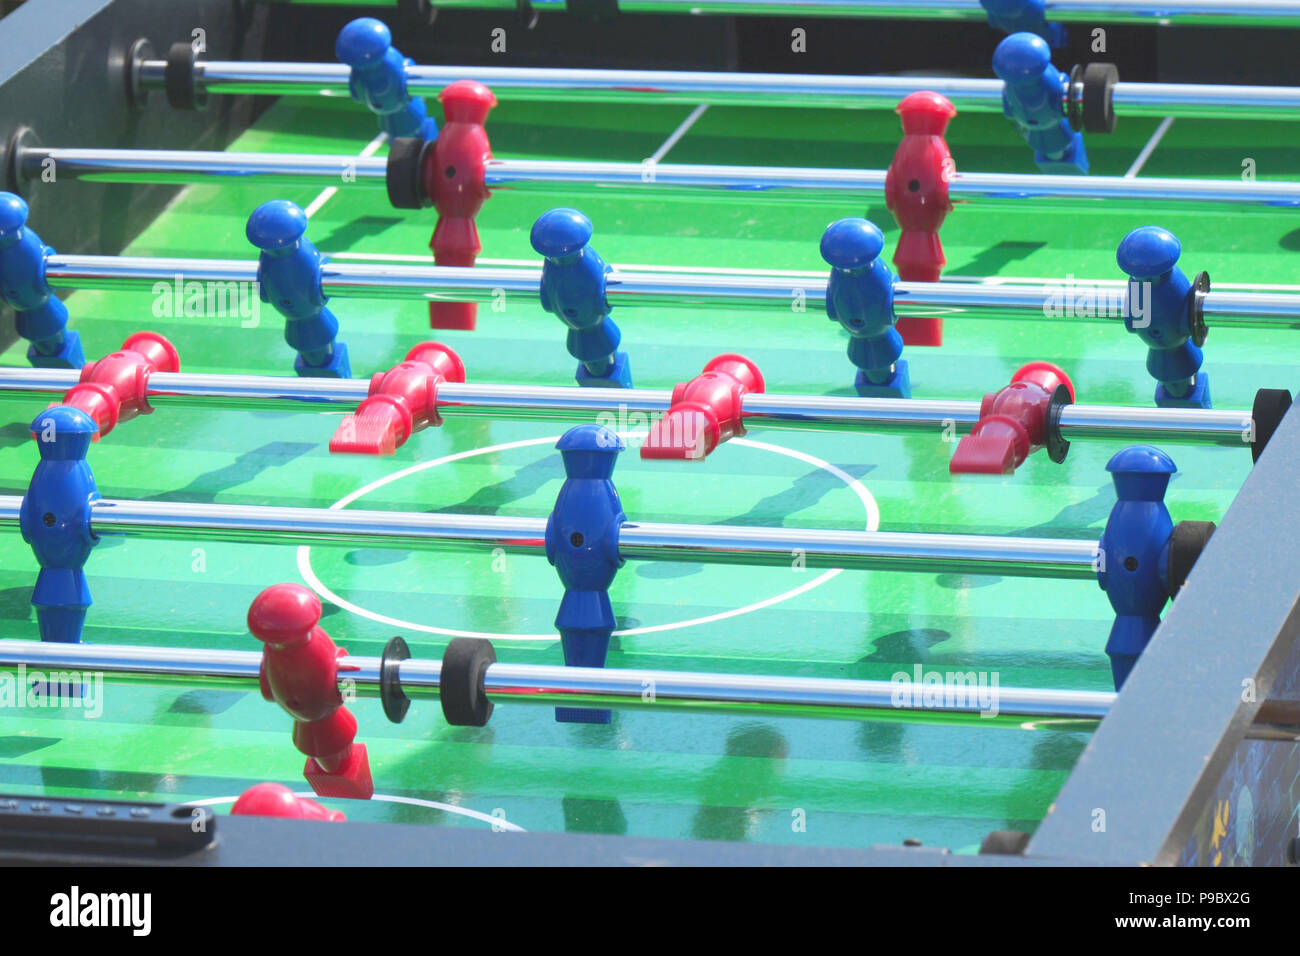 People play kicker table football soccer. Table soccer - Stock Image